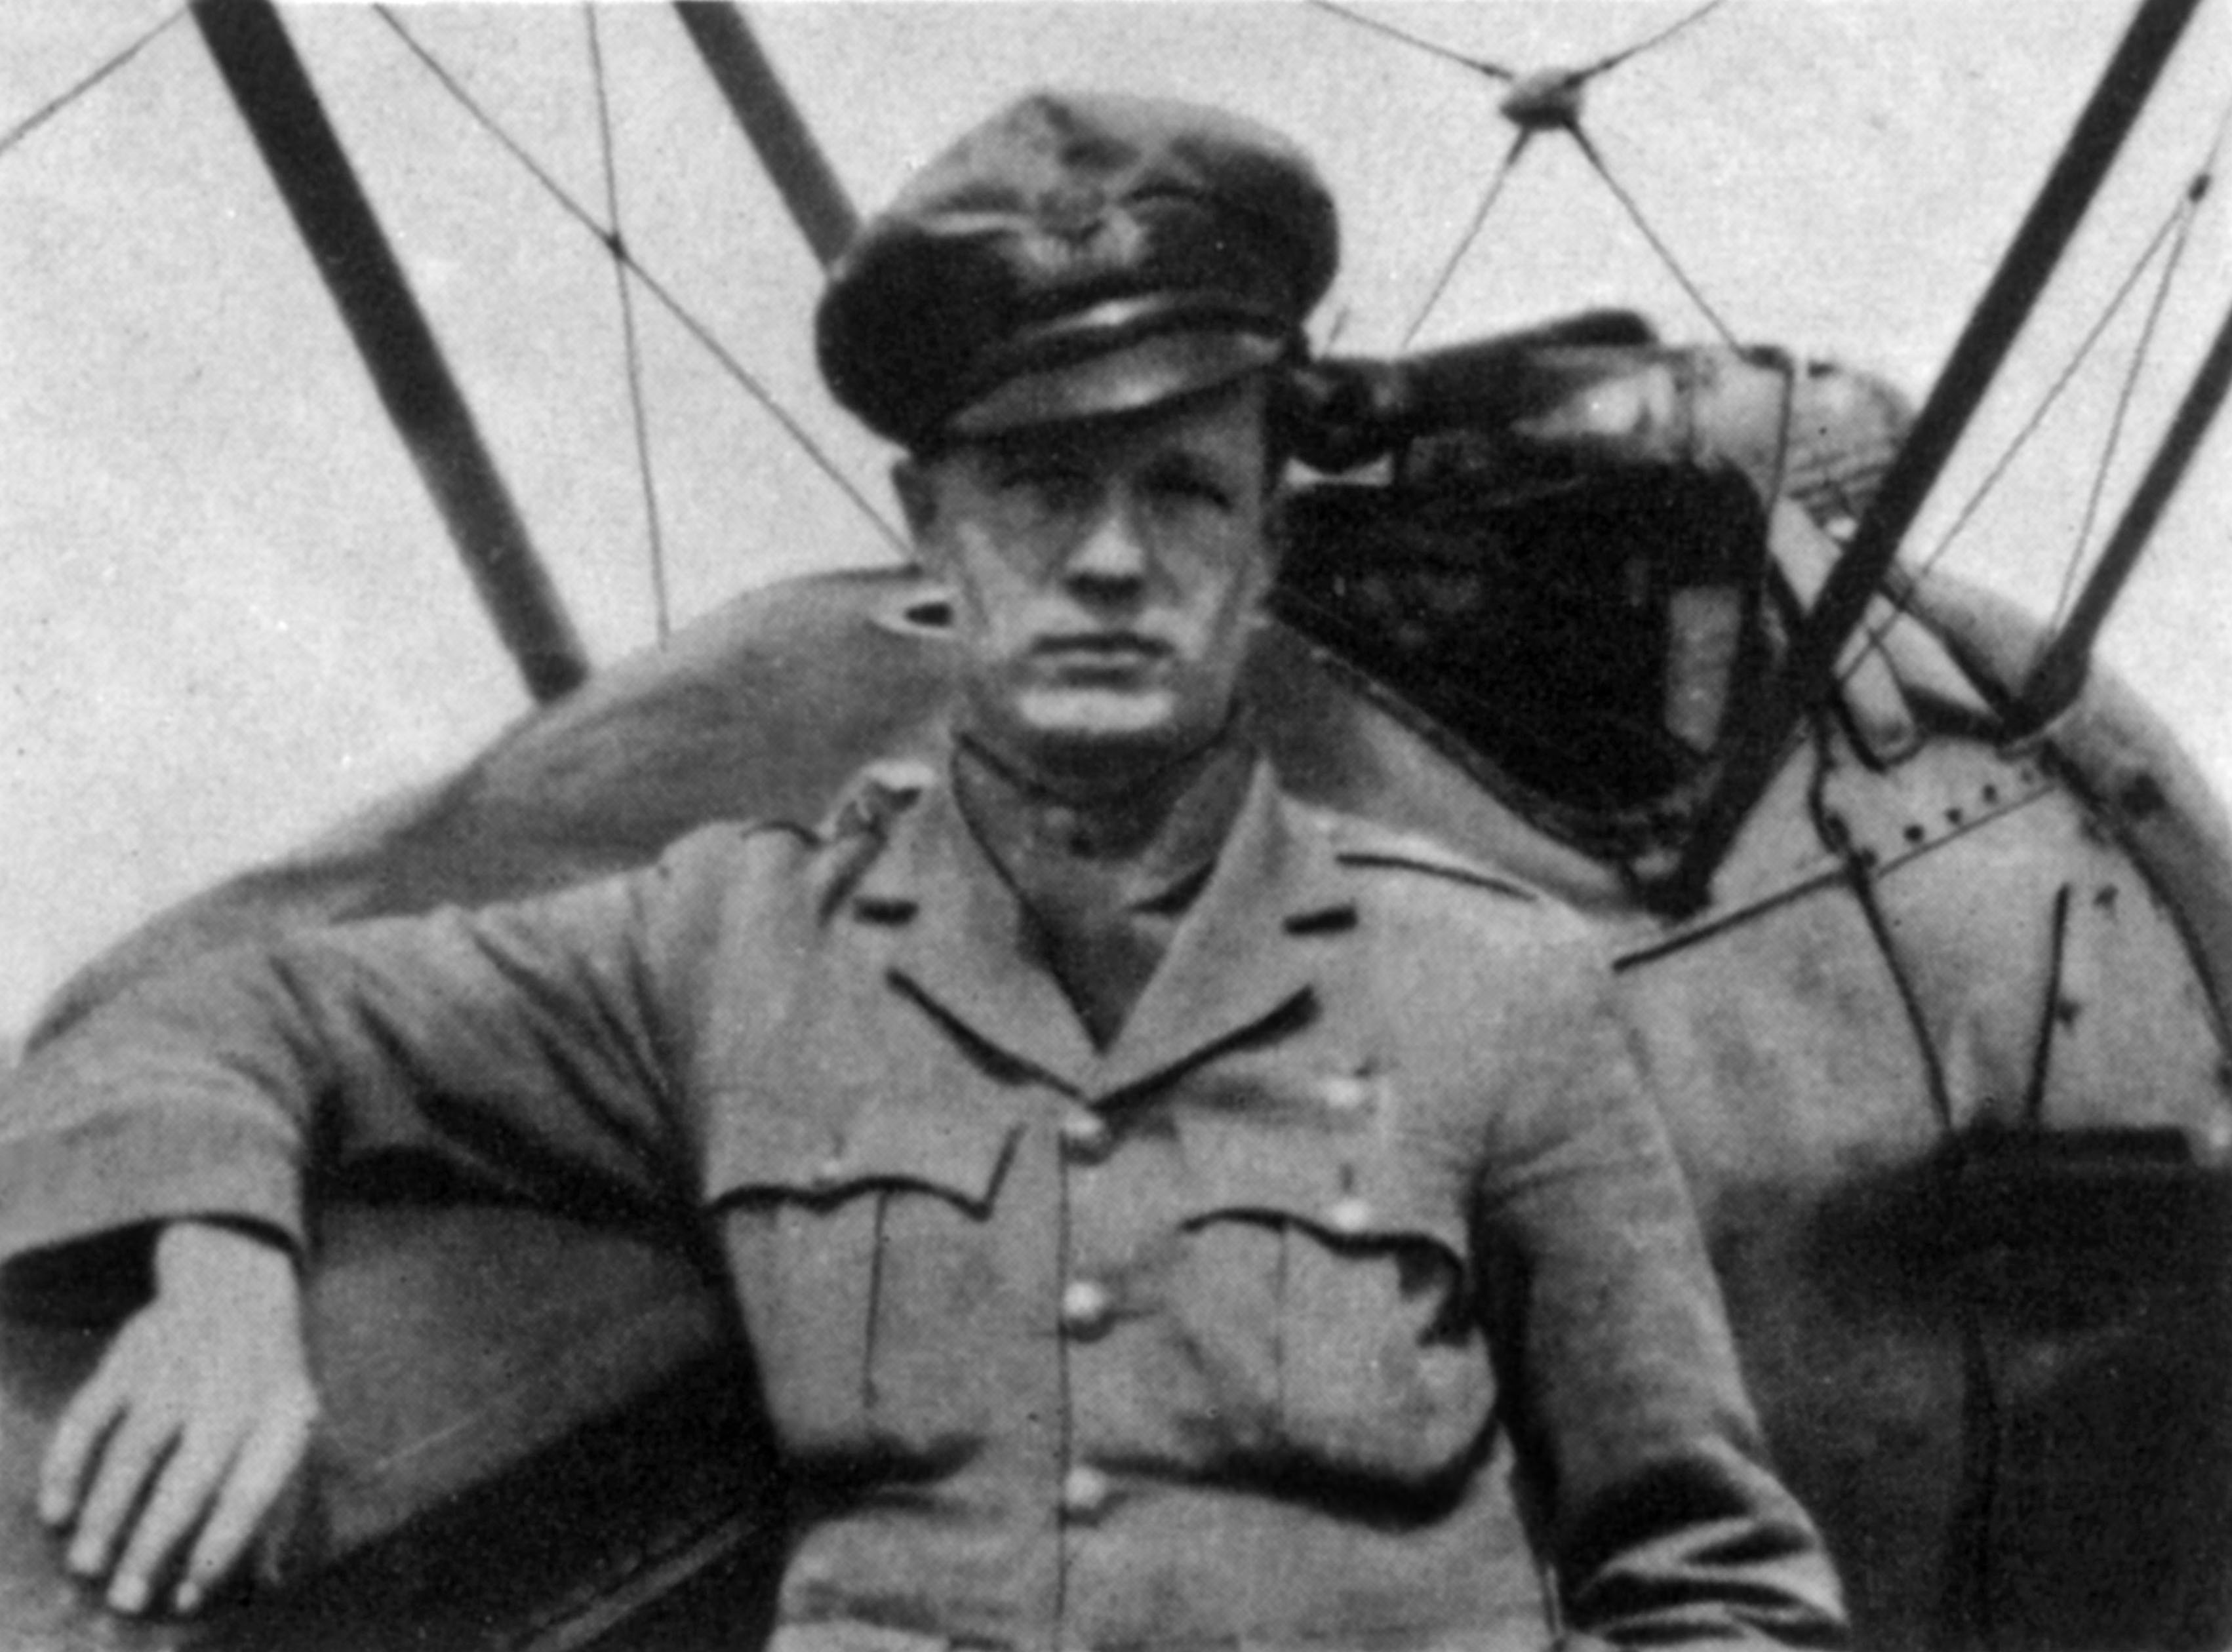 the life and legacy of the ace pilot manfred von richthofen The red baron: the life and legacy of manfred von richthofen paperback   the red fighter pilot: the autobiography of the red baron by manfred von.